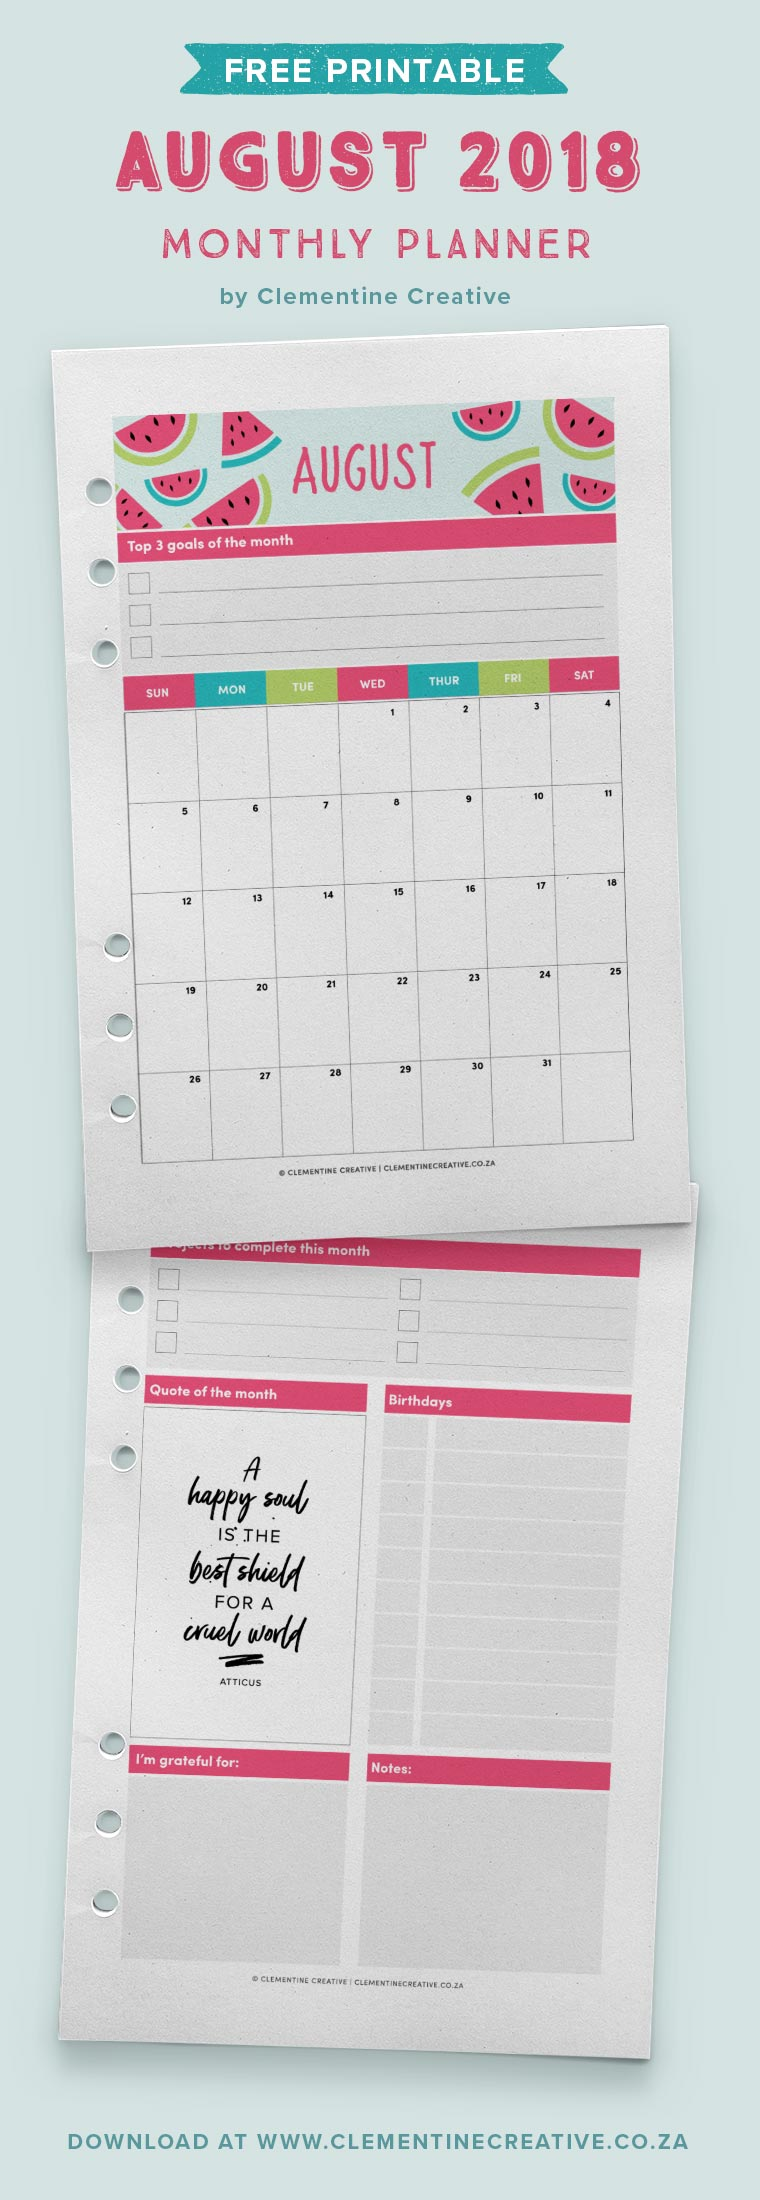 Free printable August 2018 monthly planner